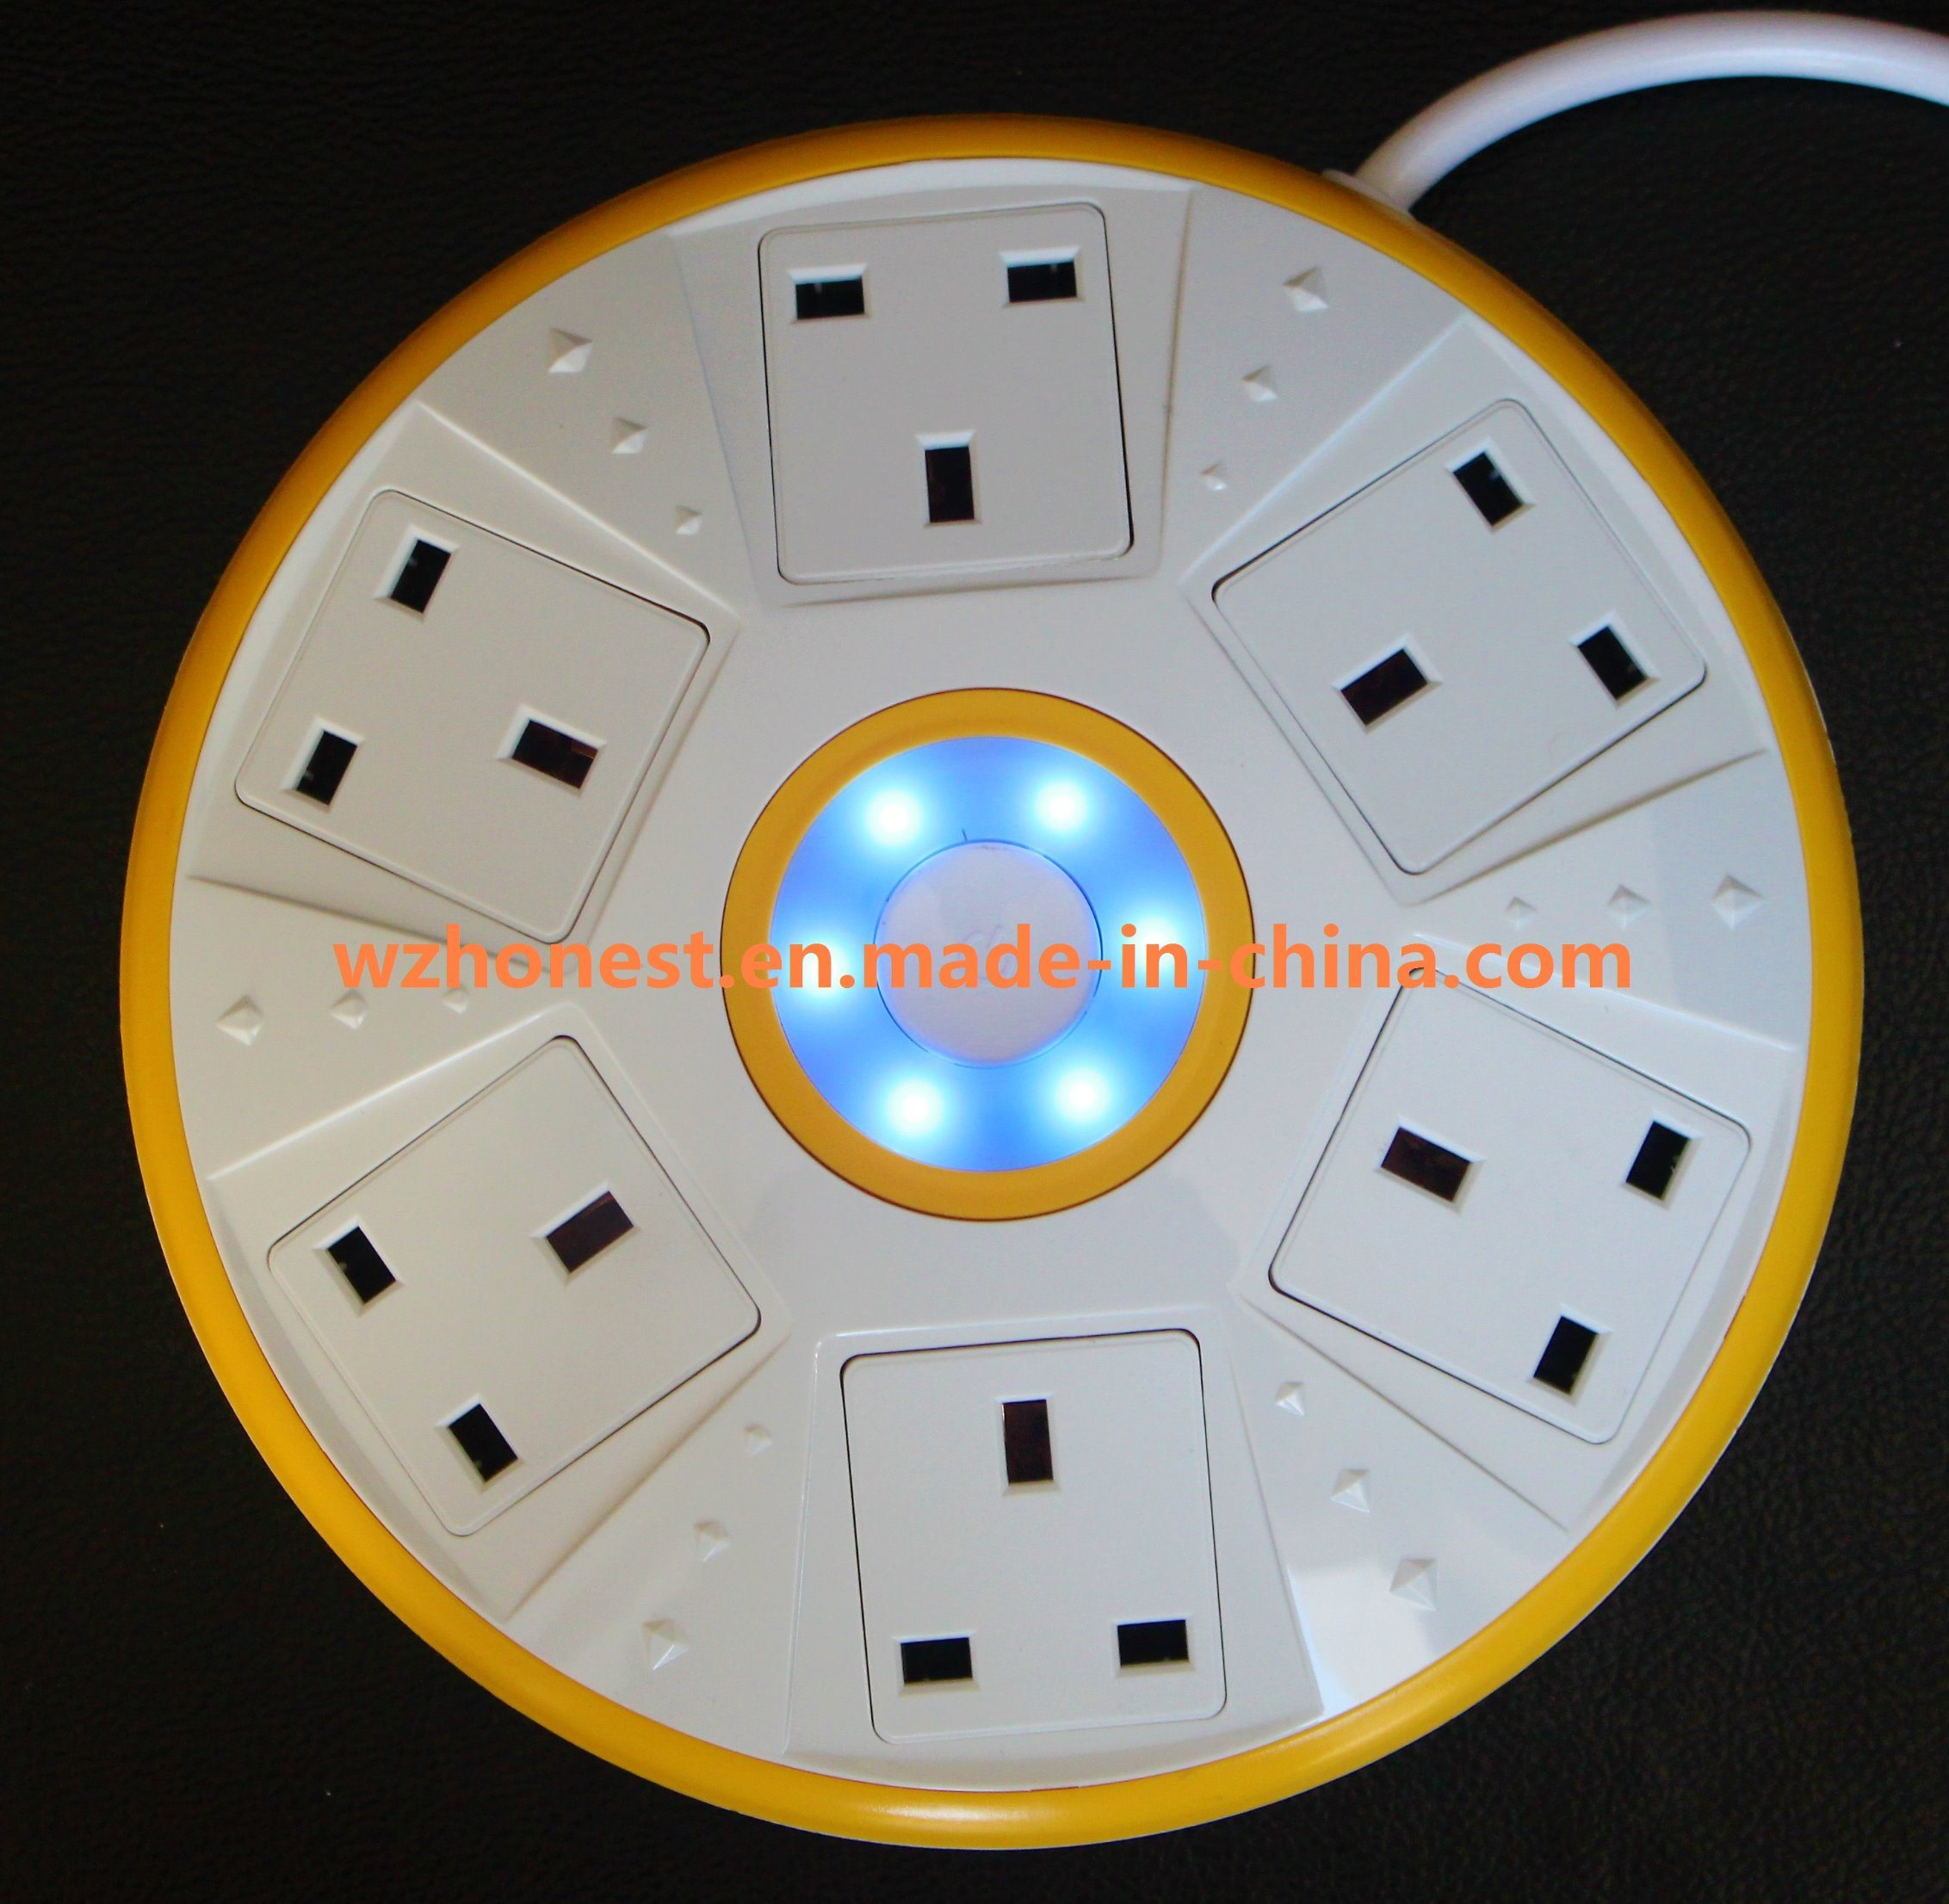 New Arrivals UFO Shape Universal Power Extension Socket with 6 Way Jack and 2 USB